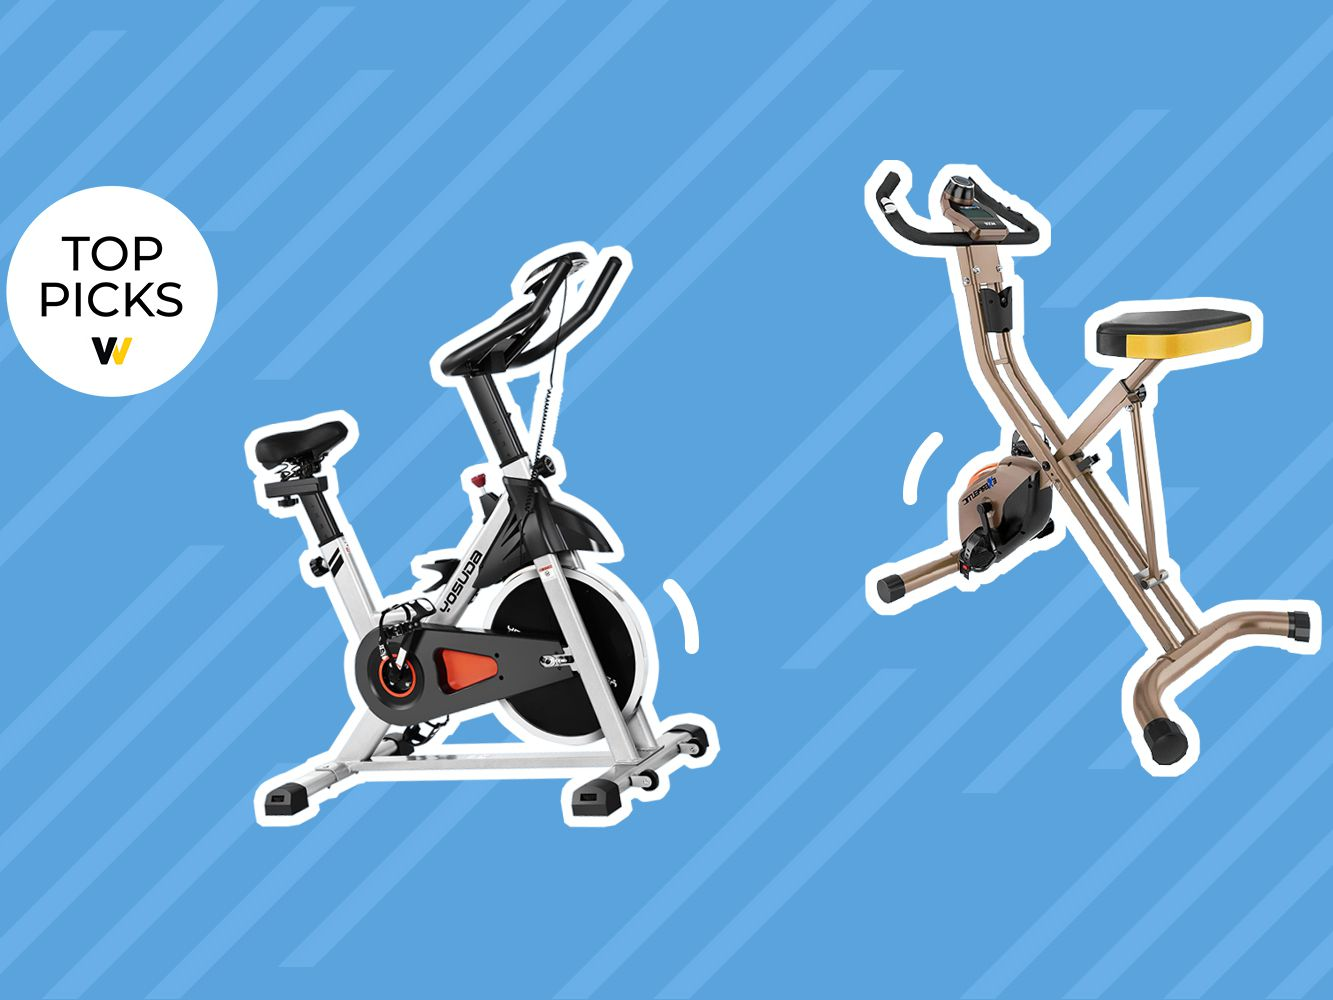 The 11 Best Exercise Bikes Of 2021